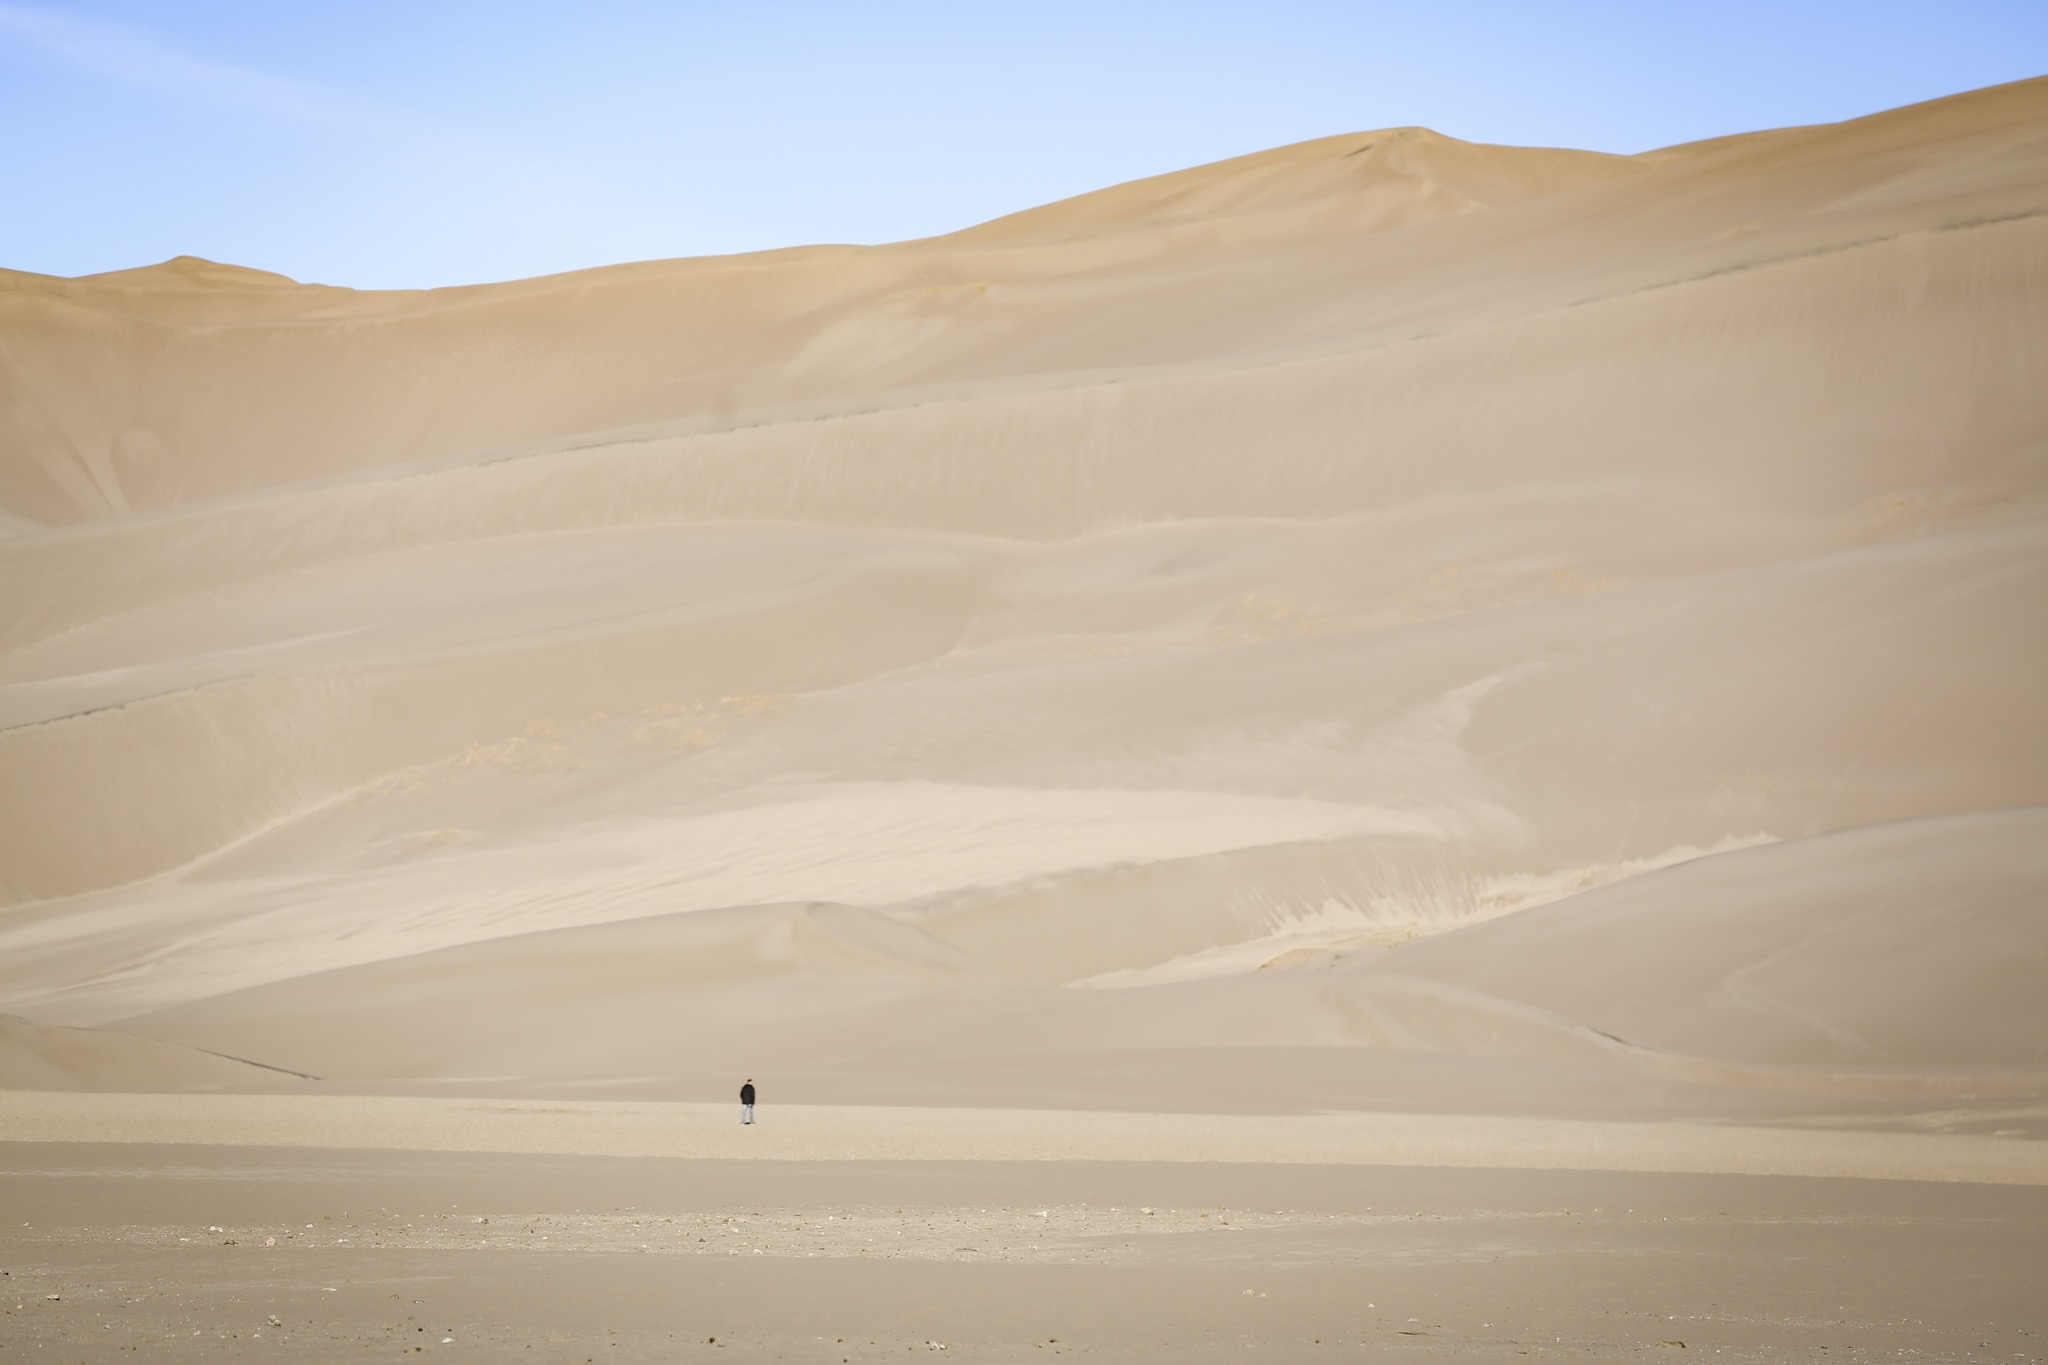 Nature__Sand_Dunes__People.JPG